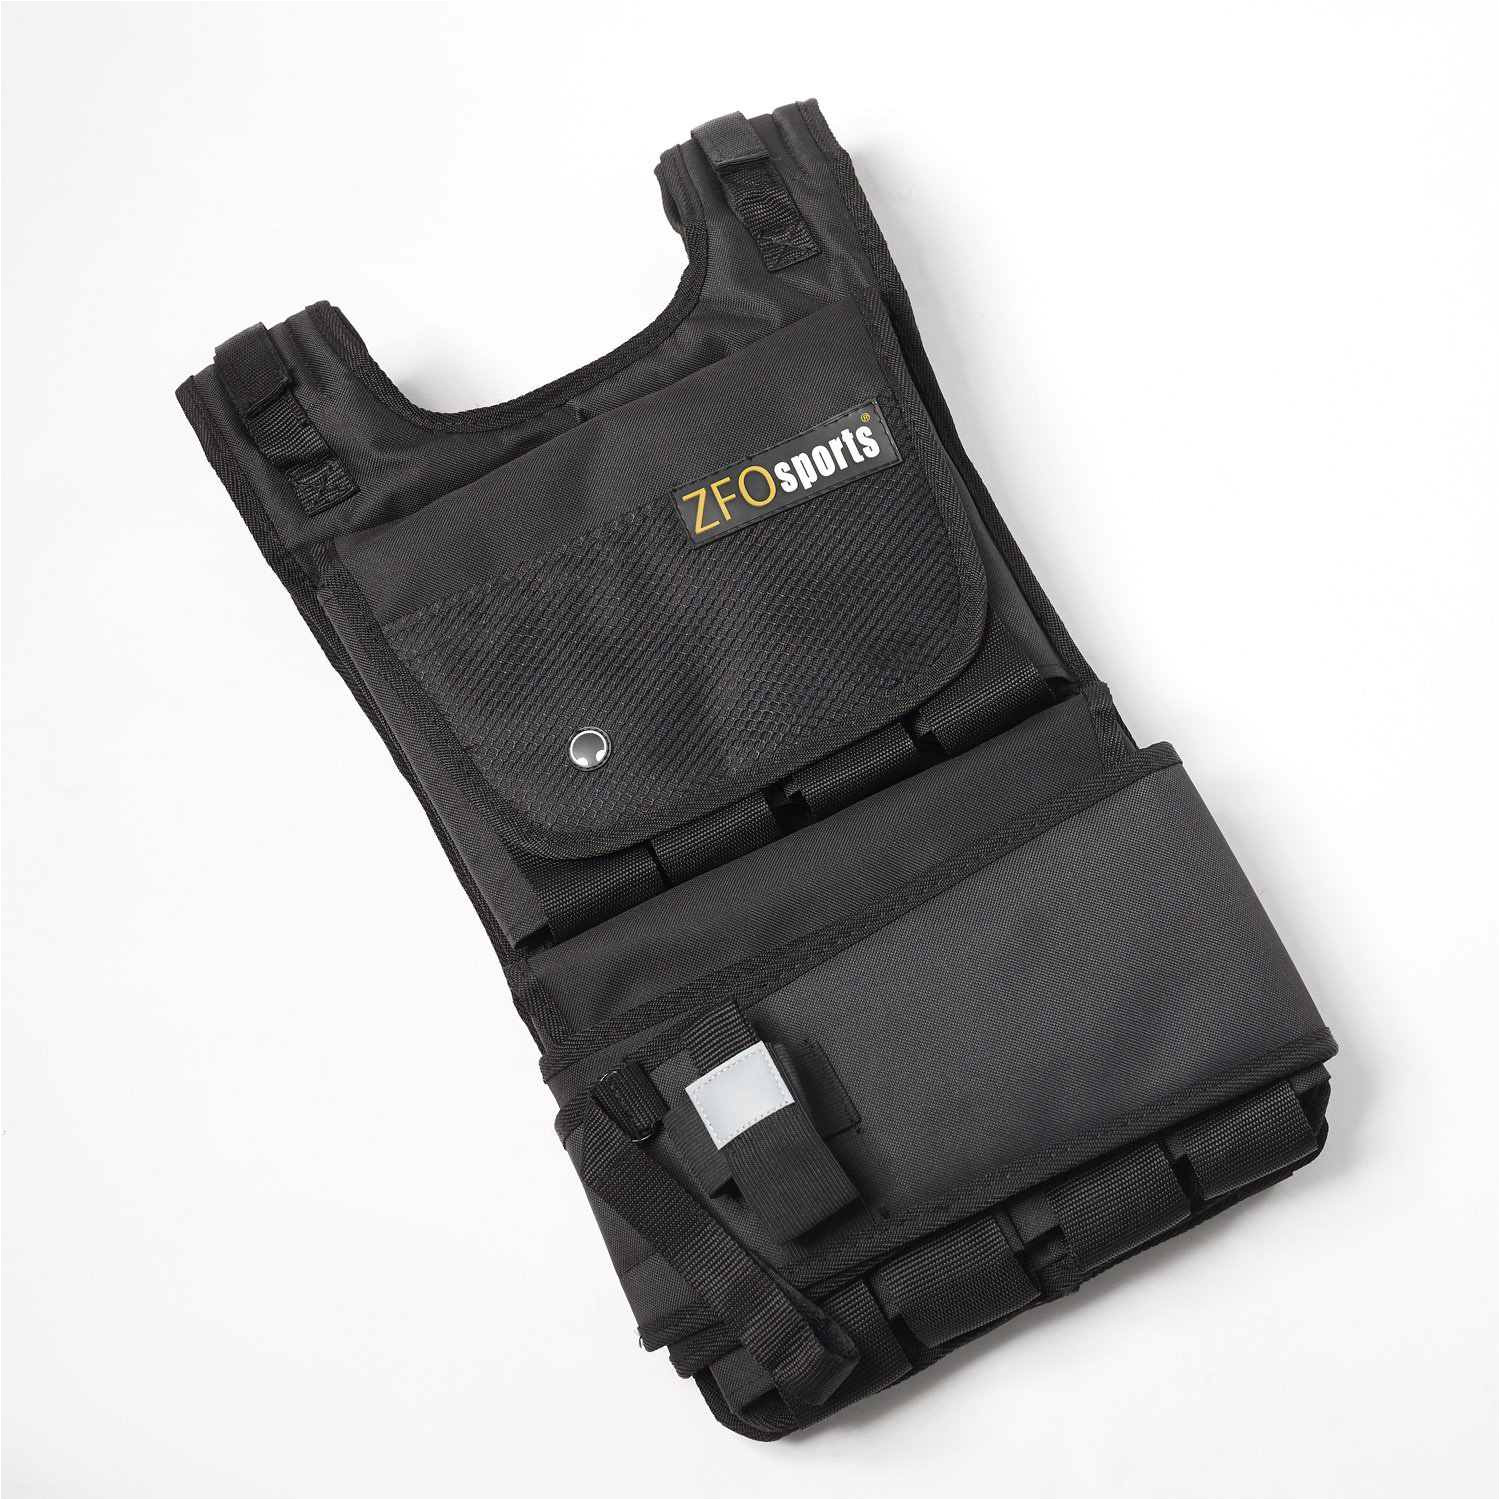 weighted vest product photo